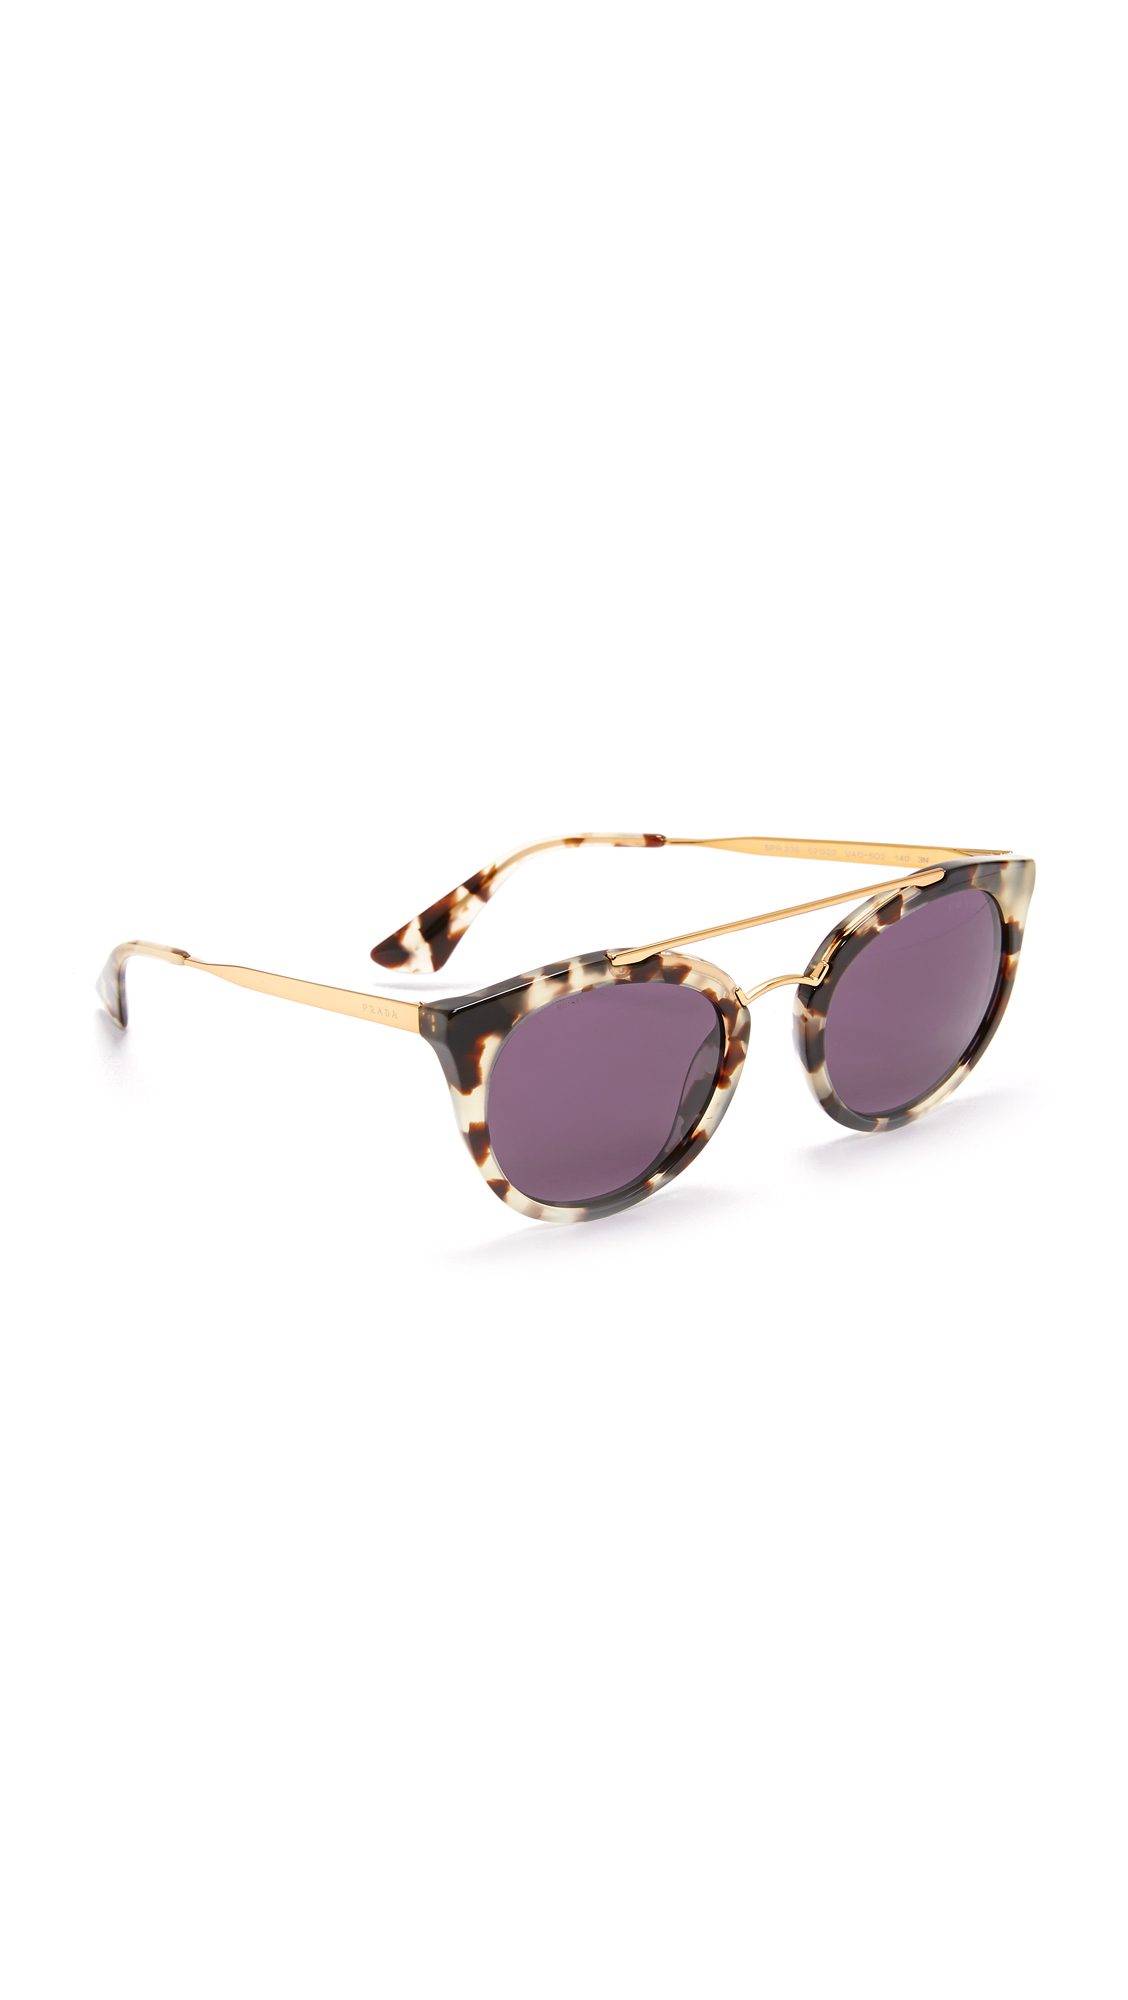 Prada Round Aviator Sunglasses - White Havana/Violet at Shopbop